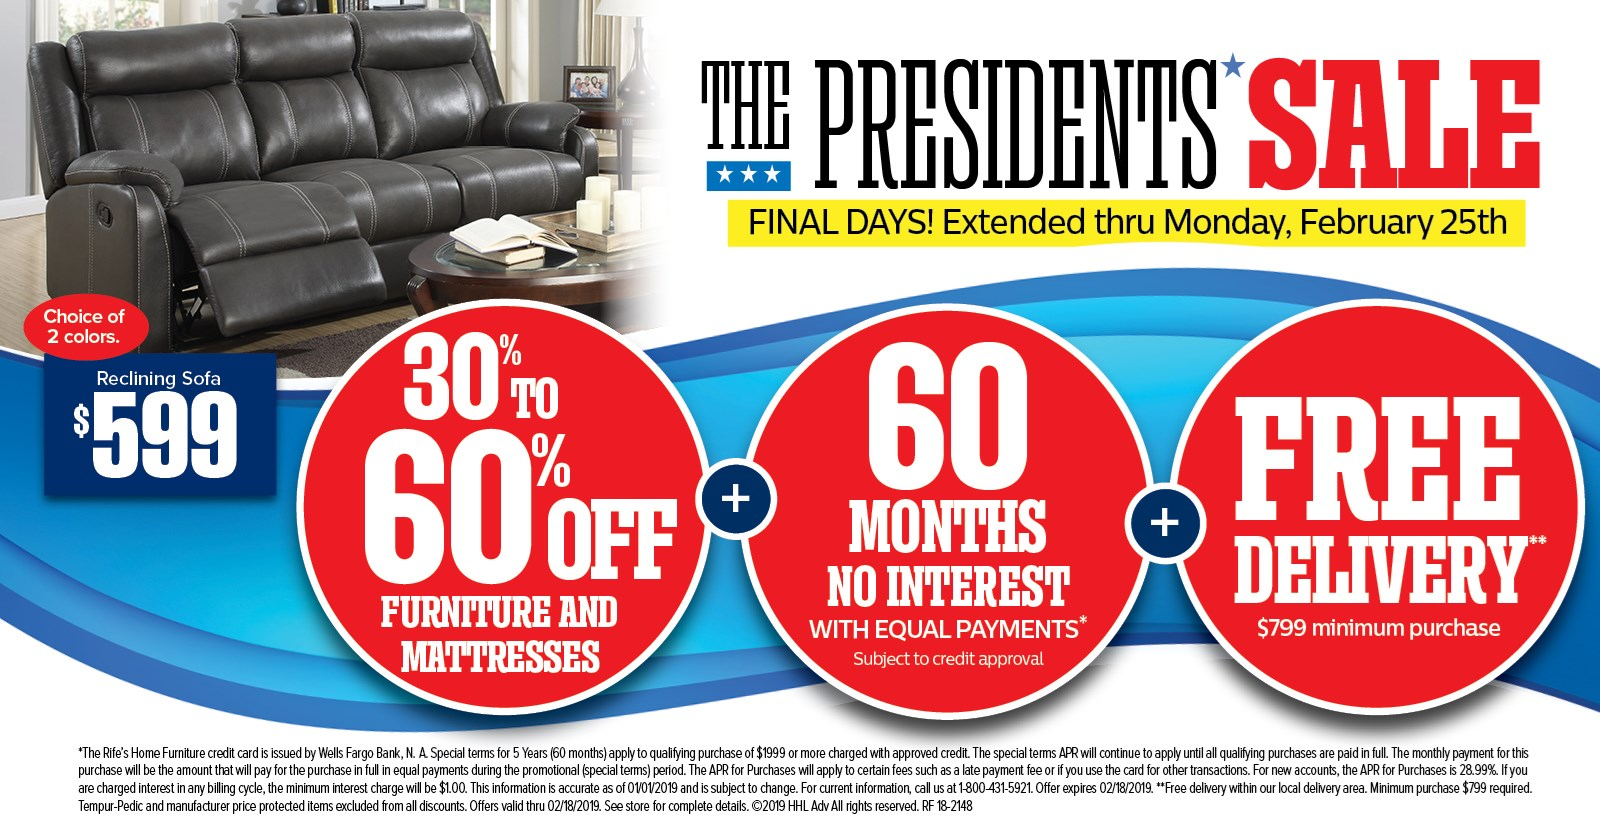 Presidents Sale Final Days